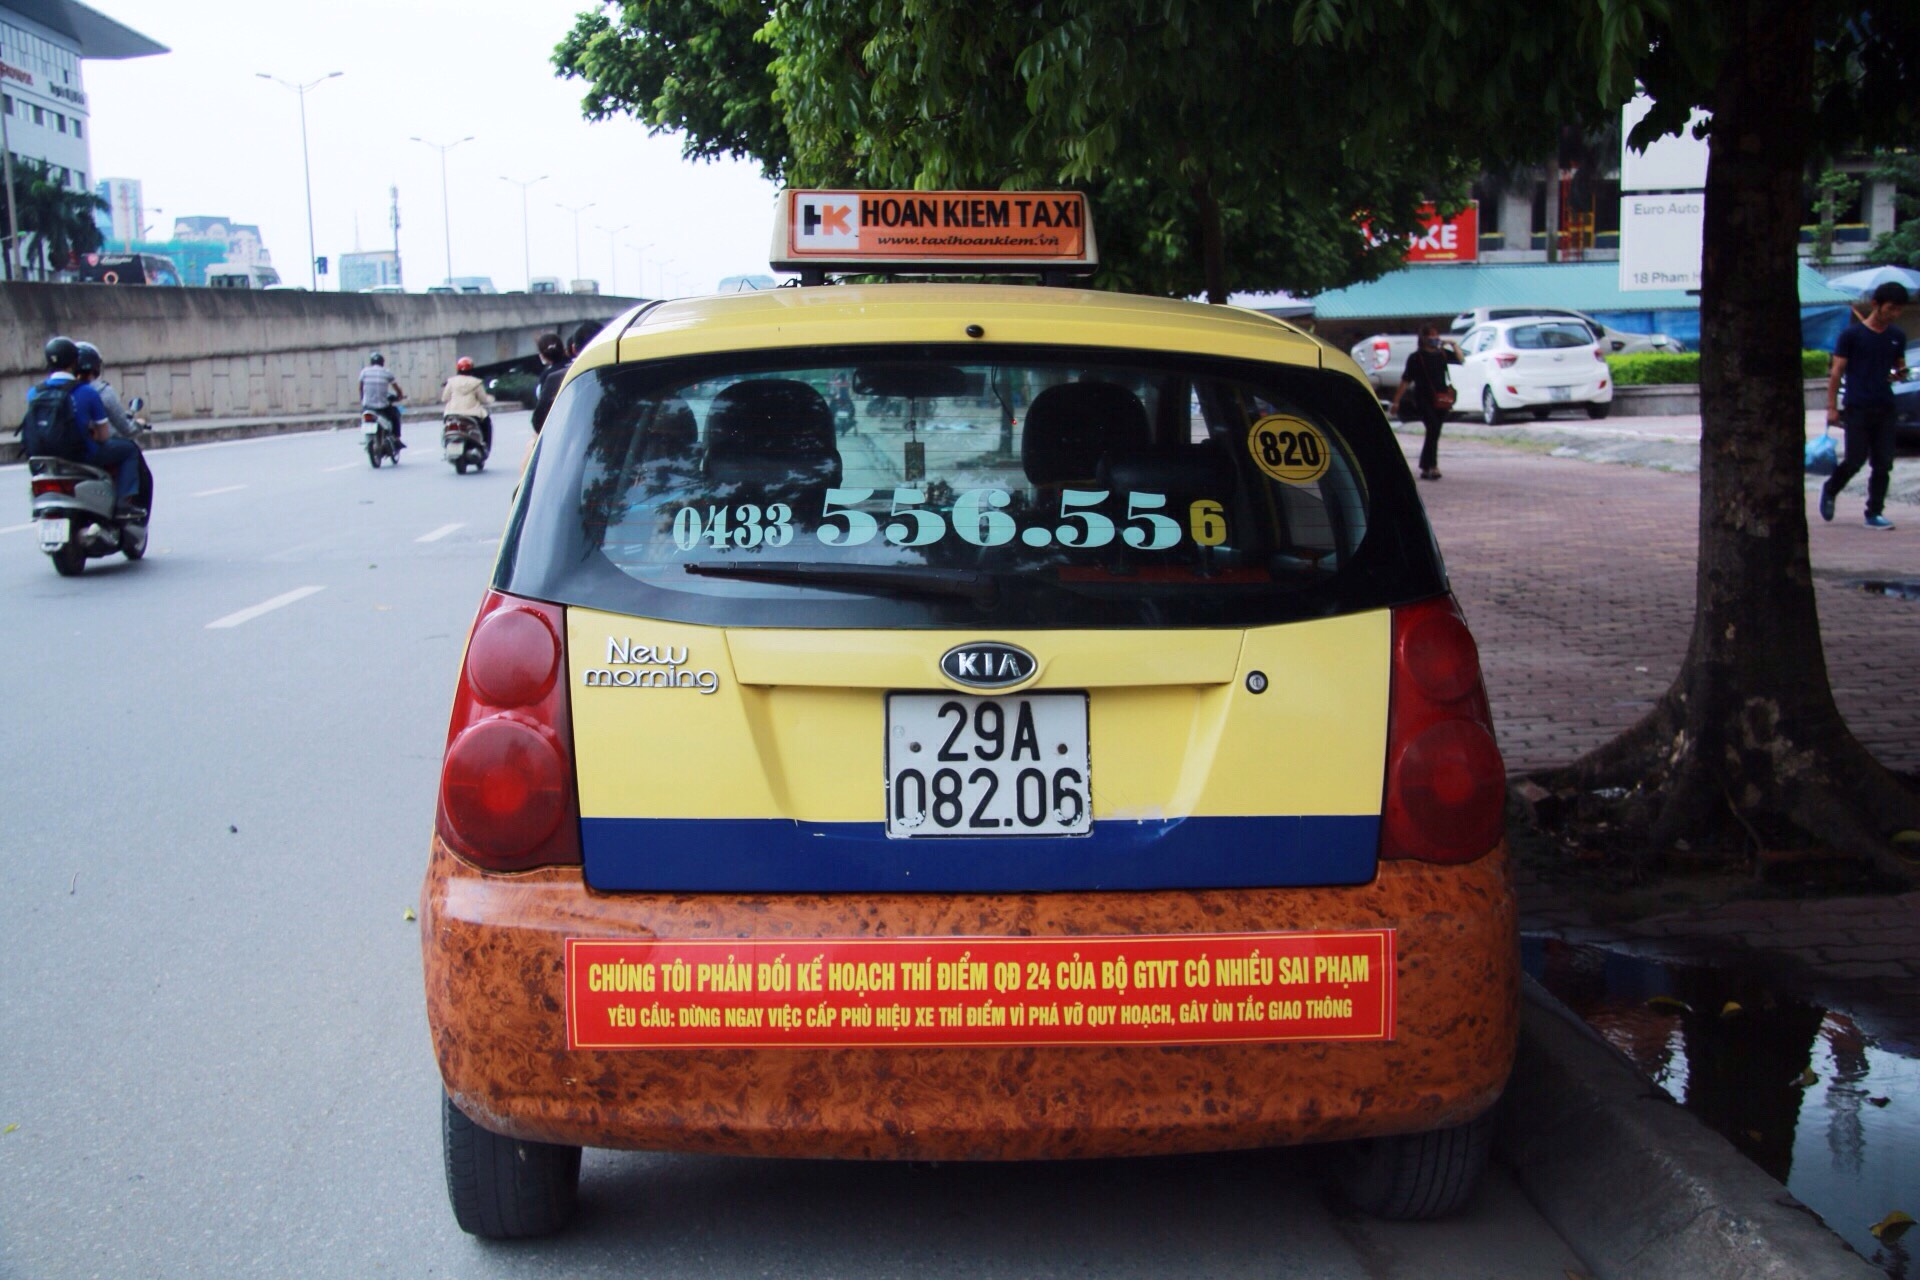 ​Hanoi taxis protest Grab, Uber with bumper stickers